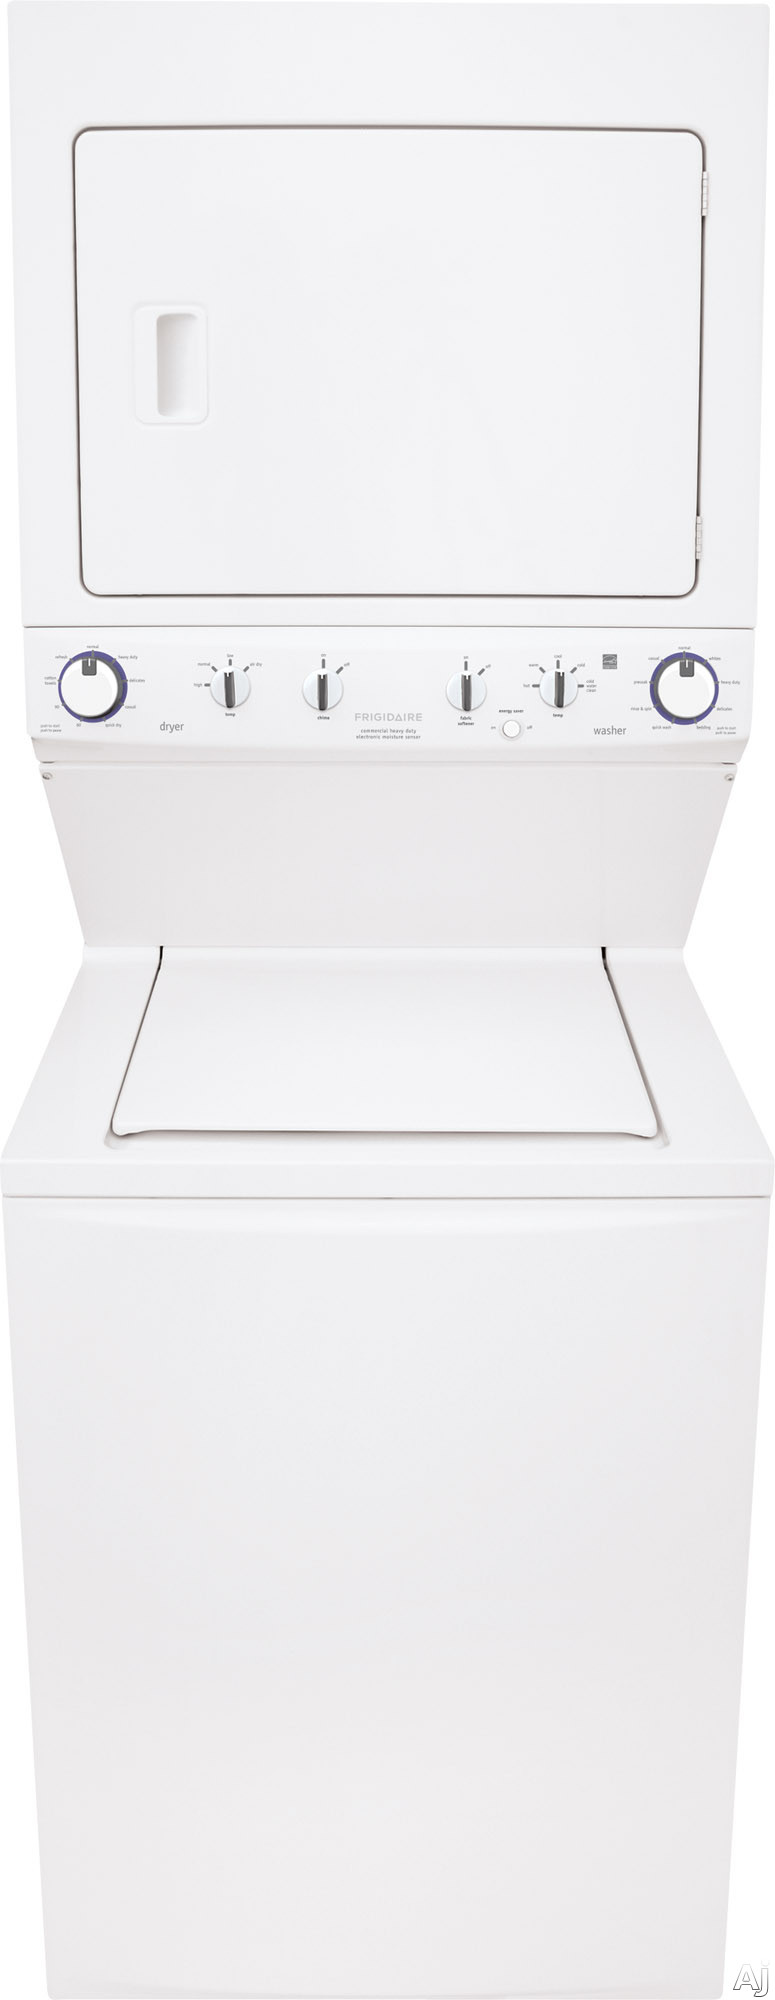 "Frigidaire FFLE4033QW HE 27"""" Super Capacity 3.8 cu. ft. Electric Laundry Center - White"" 02667712000"